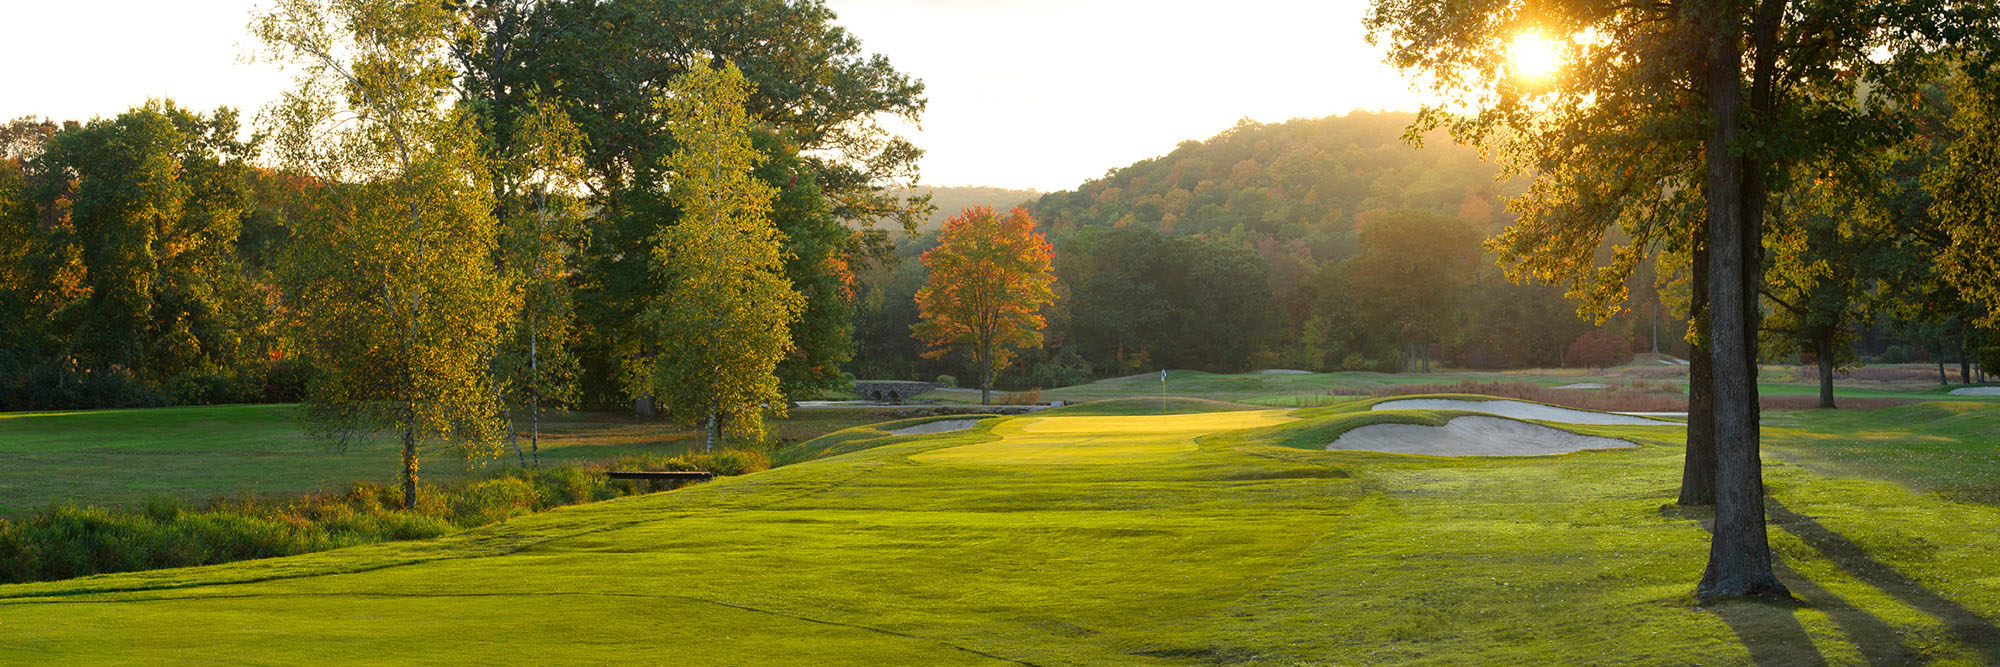 Golf Course Image - The Tuxedo Club No. 14